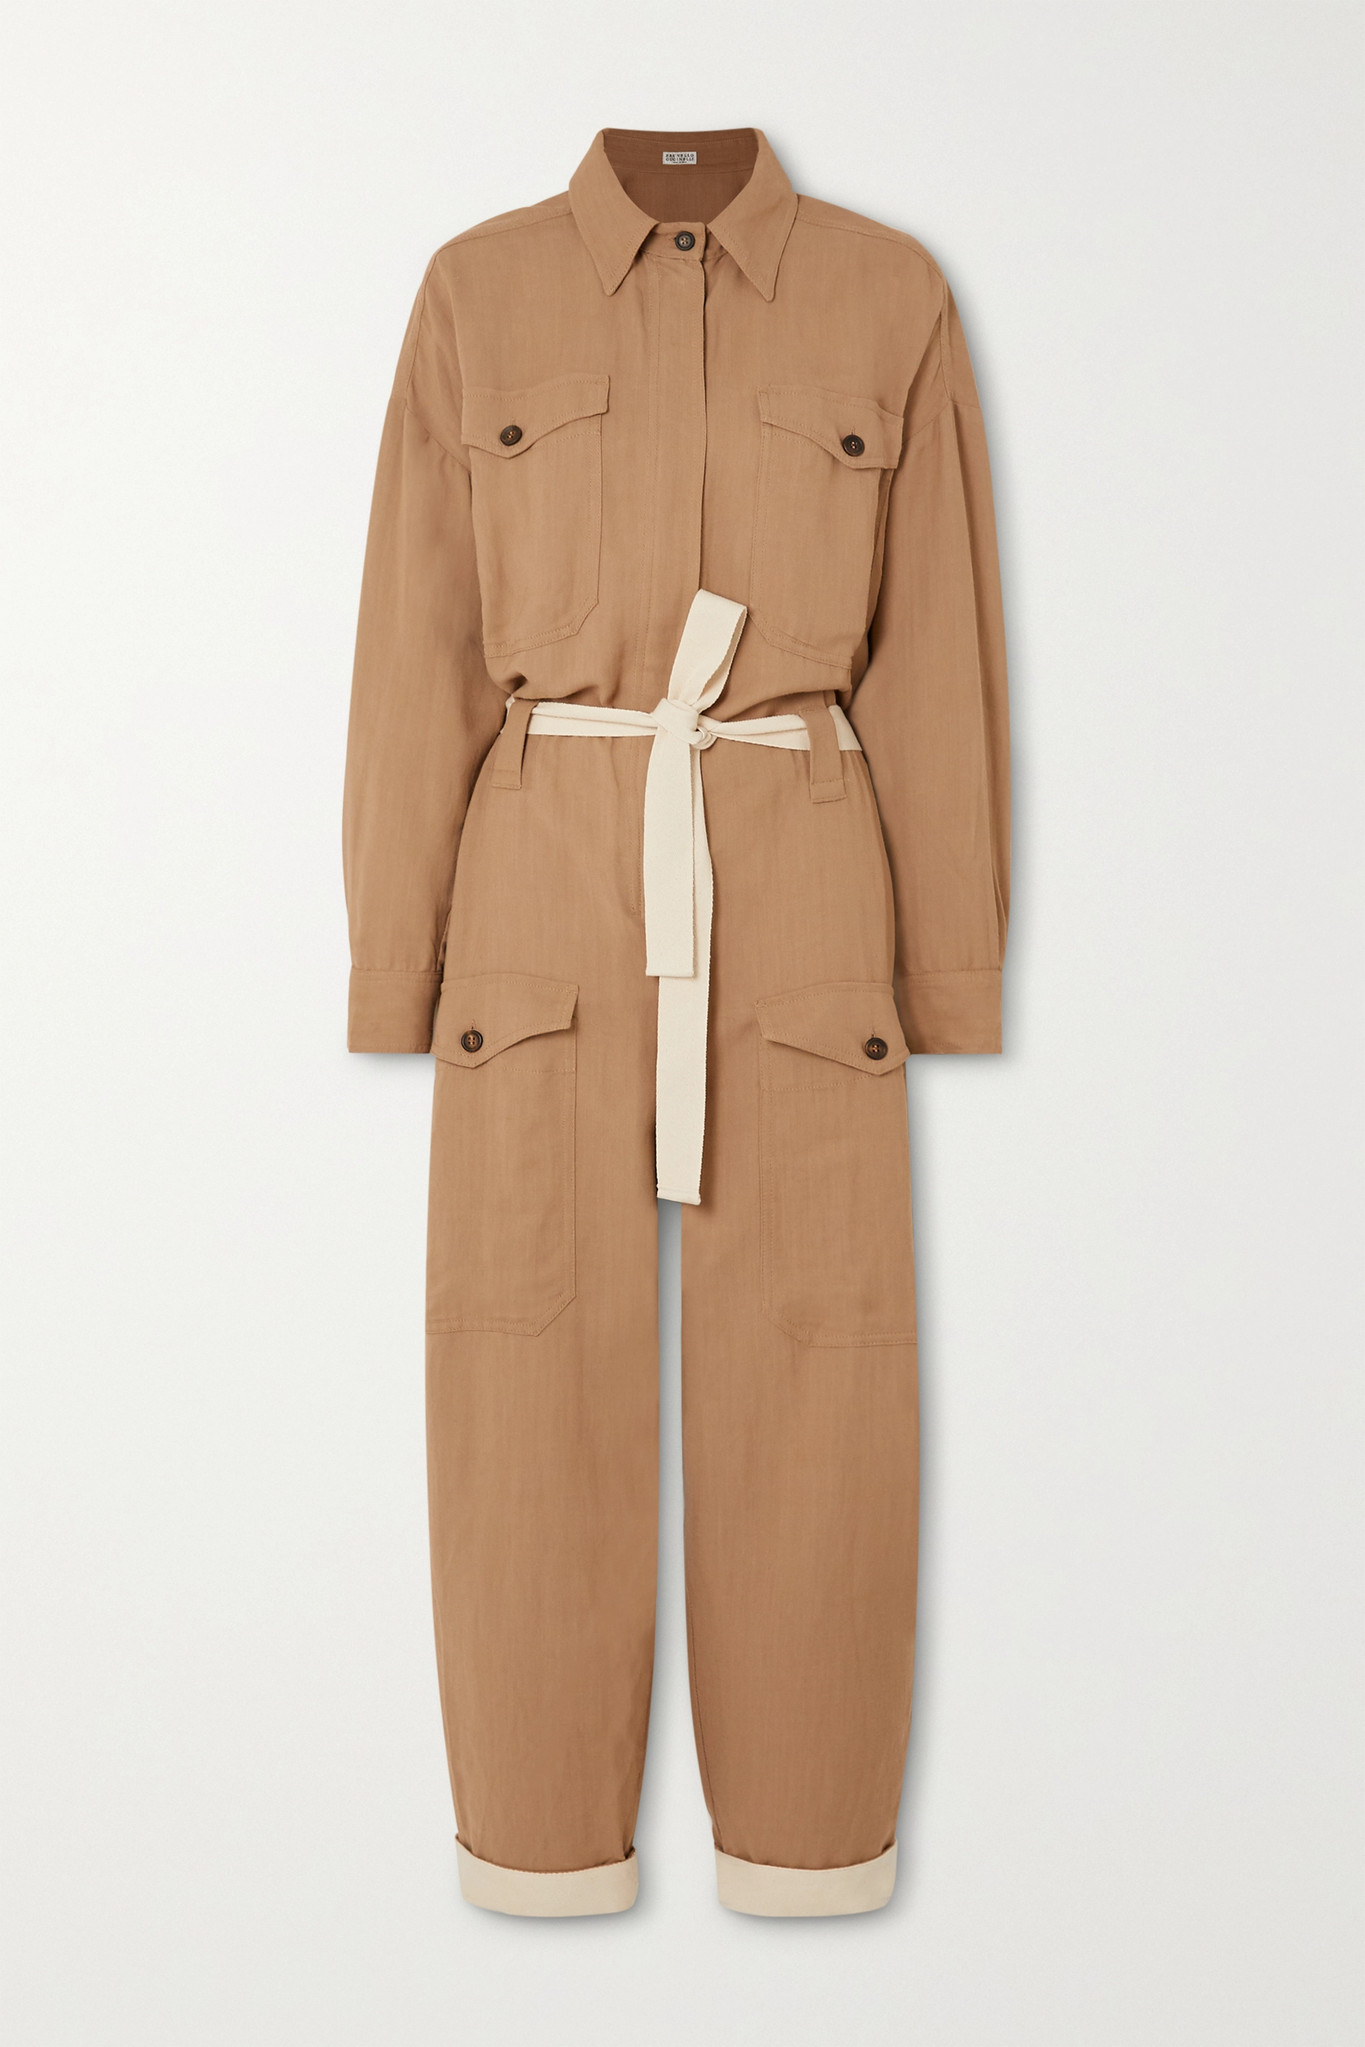 BRUNELLO CUCINELLI - + Space For Giants Belted Twill Jumpsuit - Brown - x small